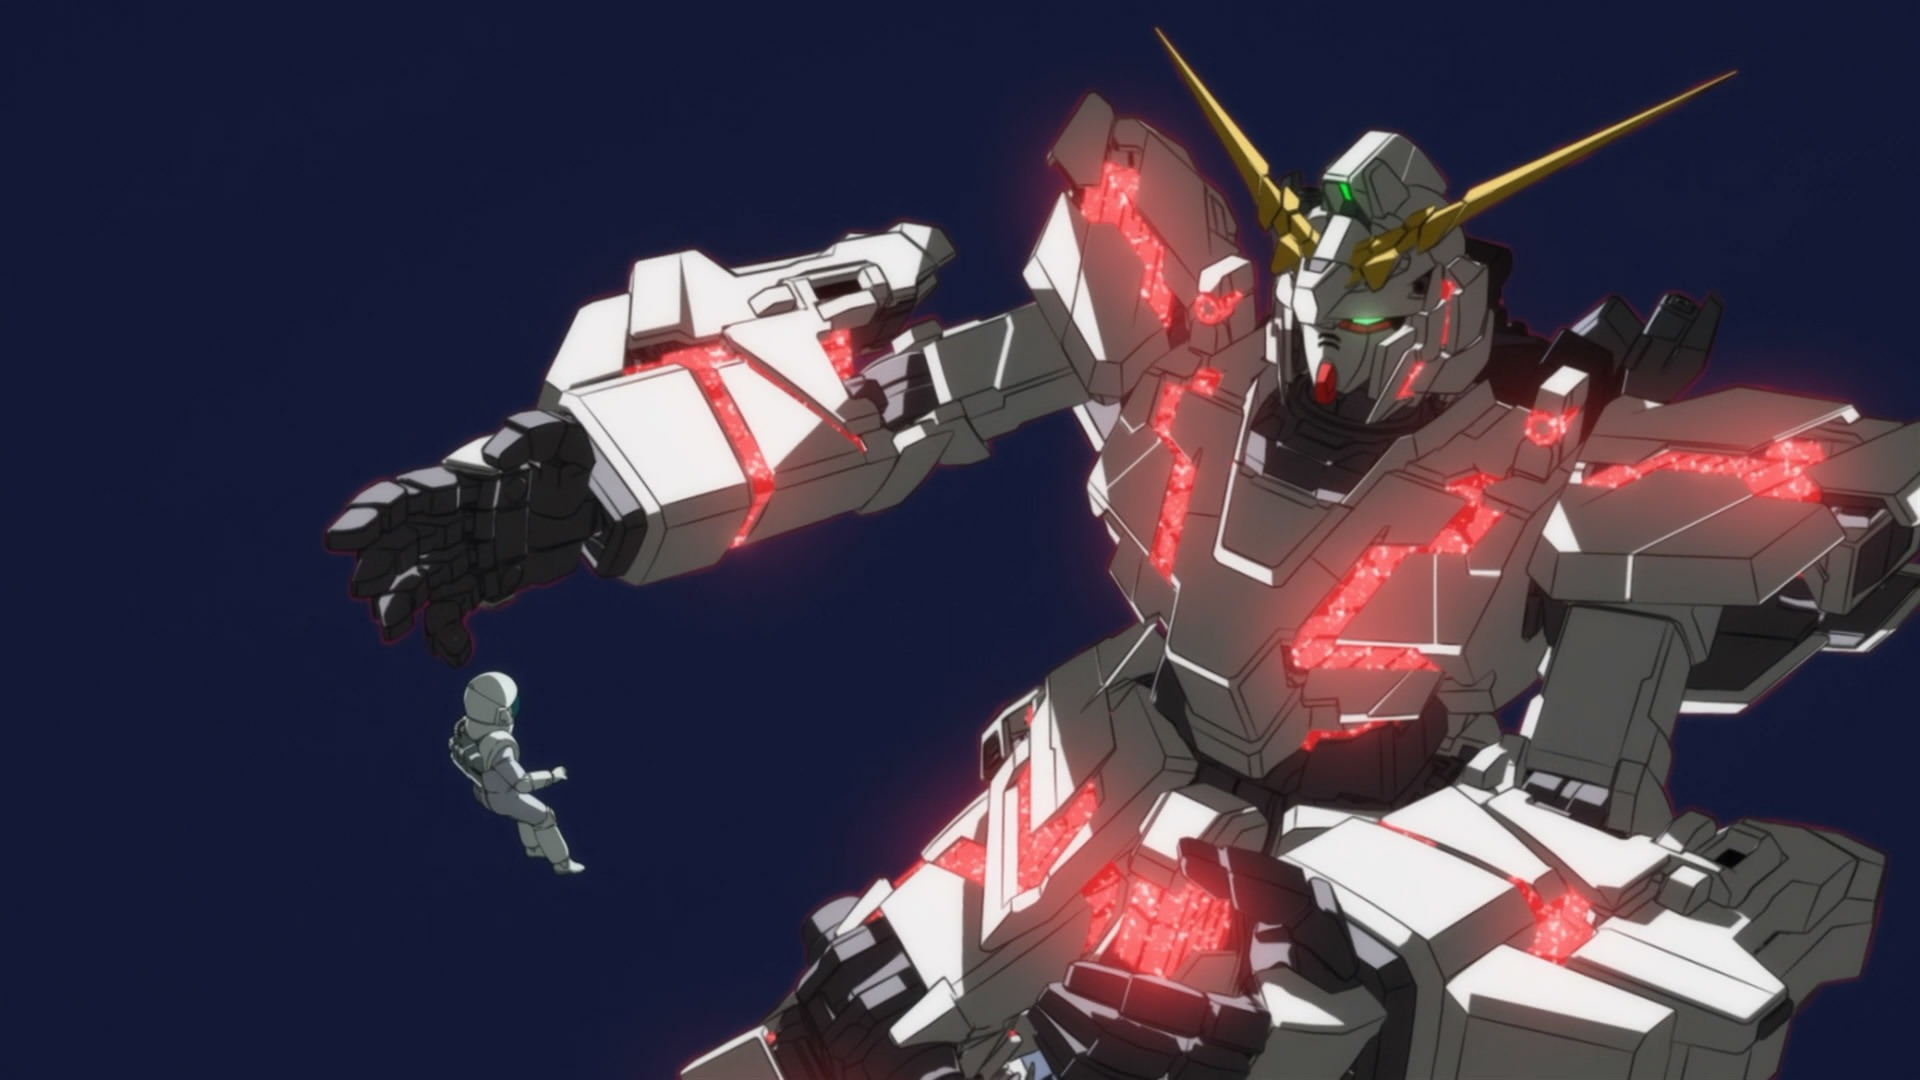 Mobile Suit Gundam Unicorn Wallpapers Anime Hq Mobile Suit